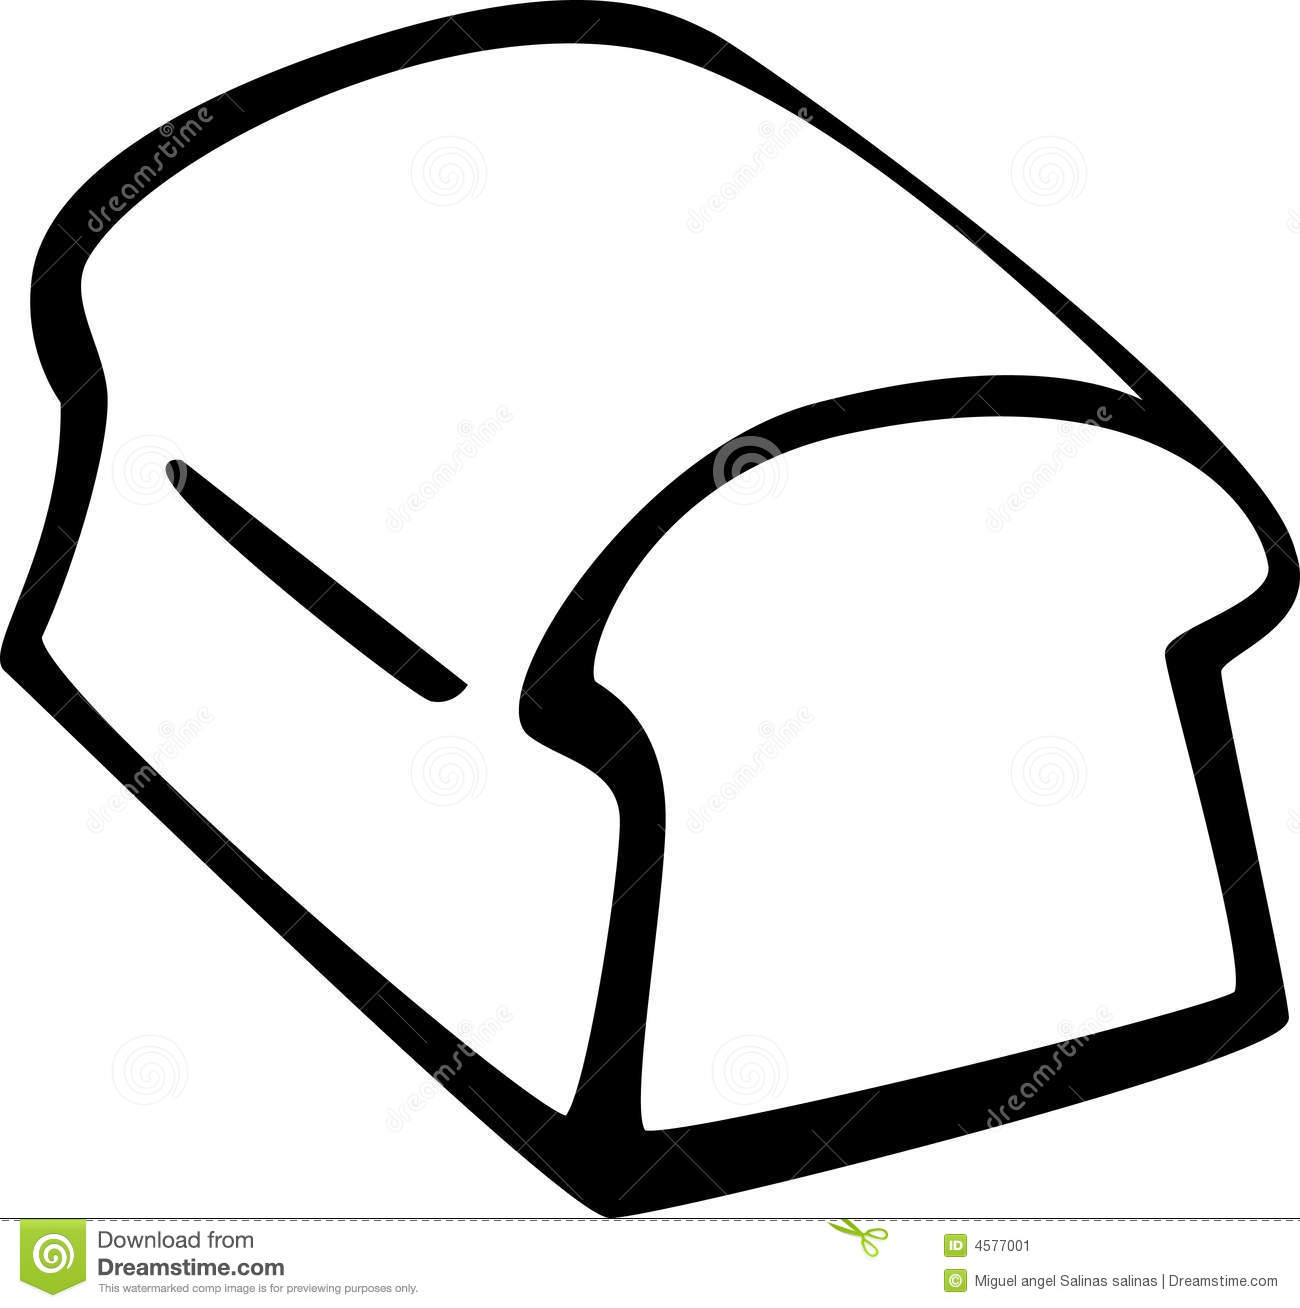 Slice of Bread Clipart Slice of Bread